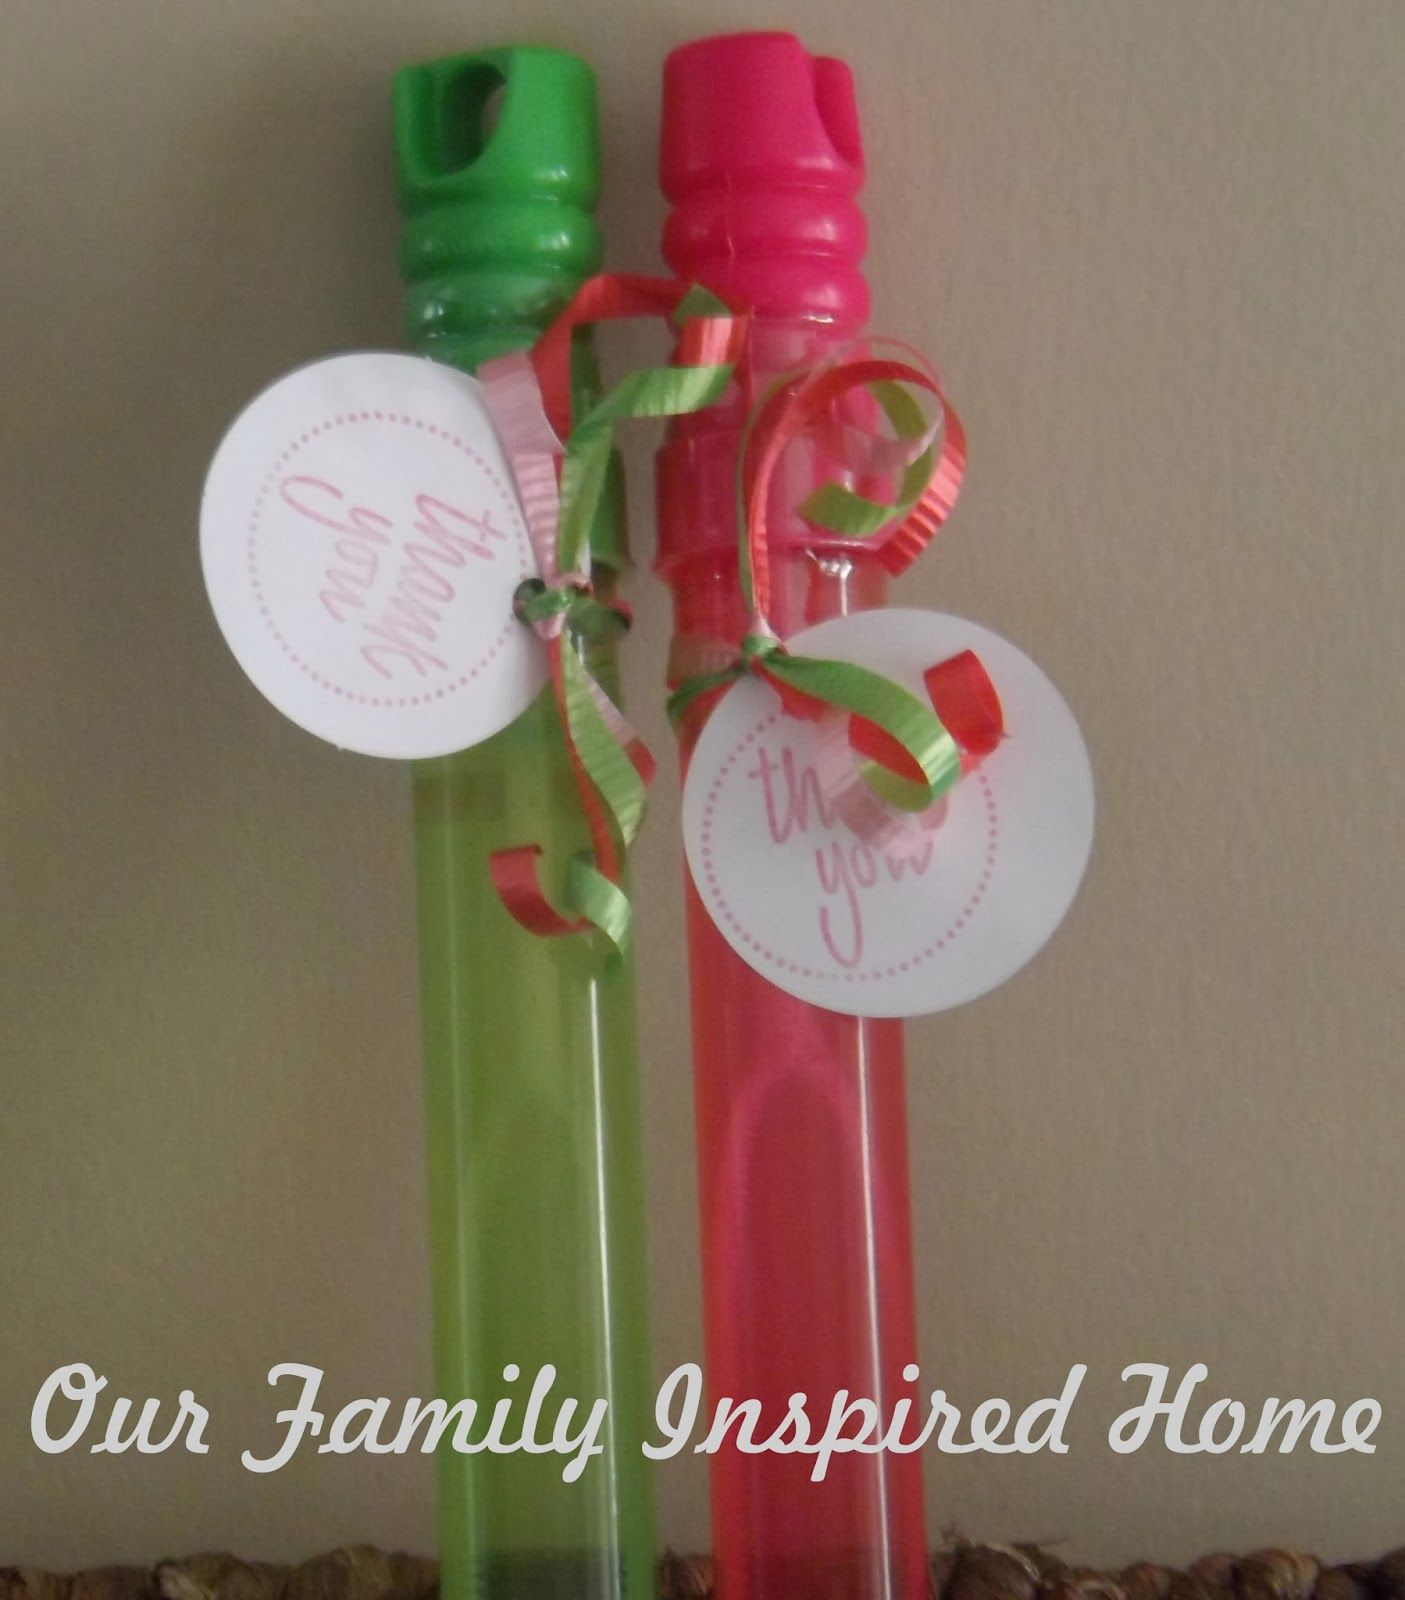 Our Family Inspired Home: Strawberry Shortcake Birthday Party, Pink, Green, Red, Party Favors, Gifts